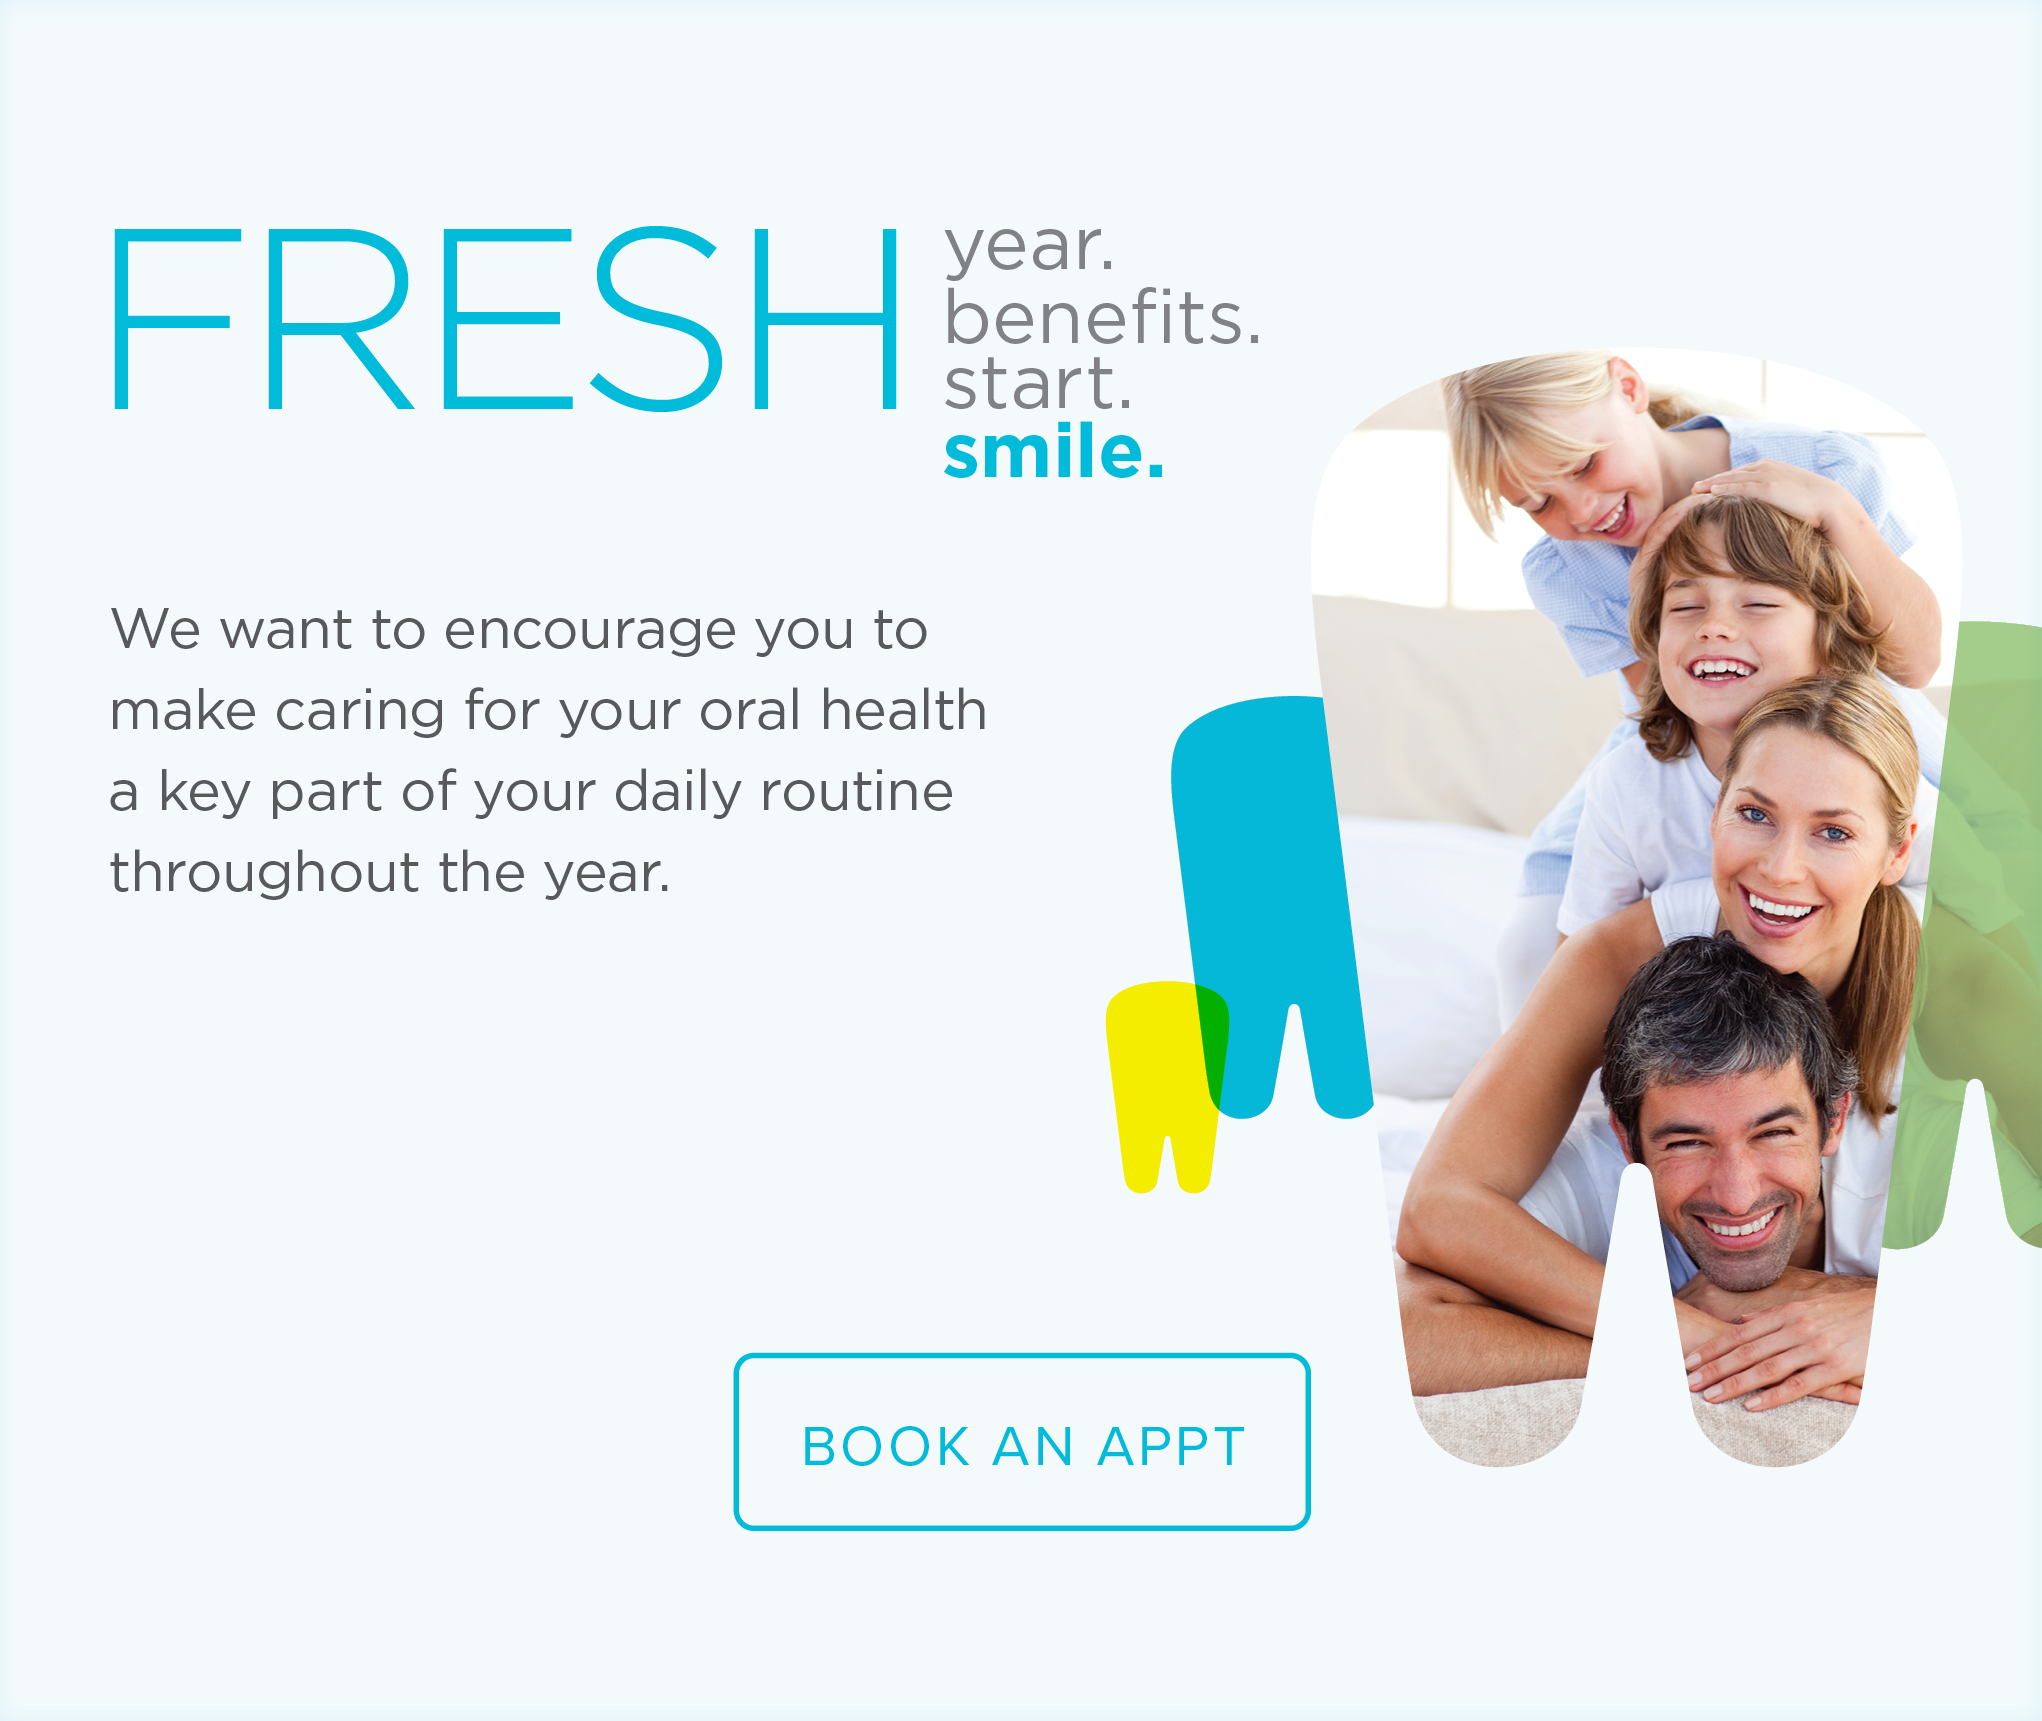 San Tan Dental Group - Make the Most of Your Benefits